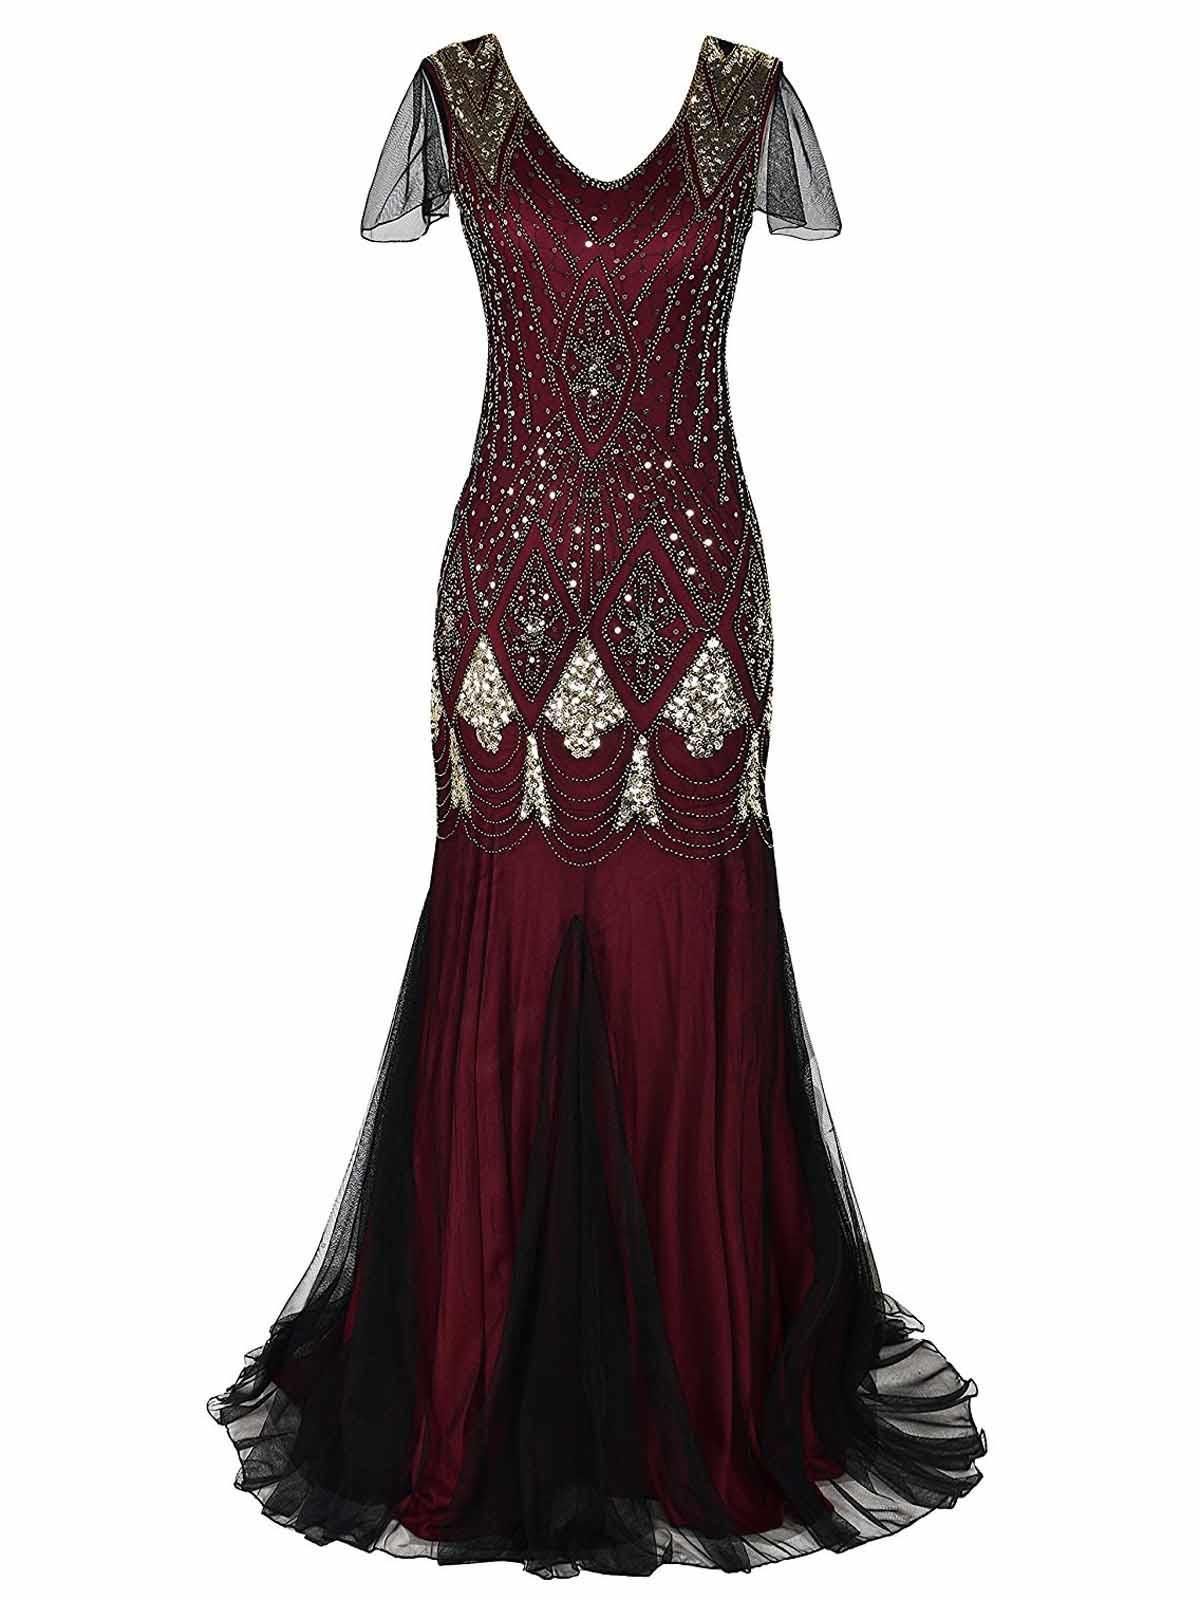 Women 1920s Sequin Party Dress